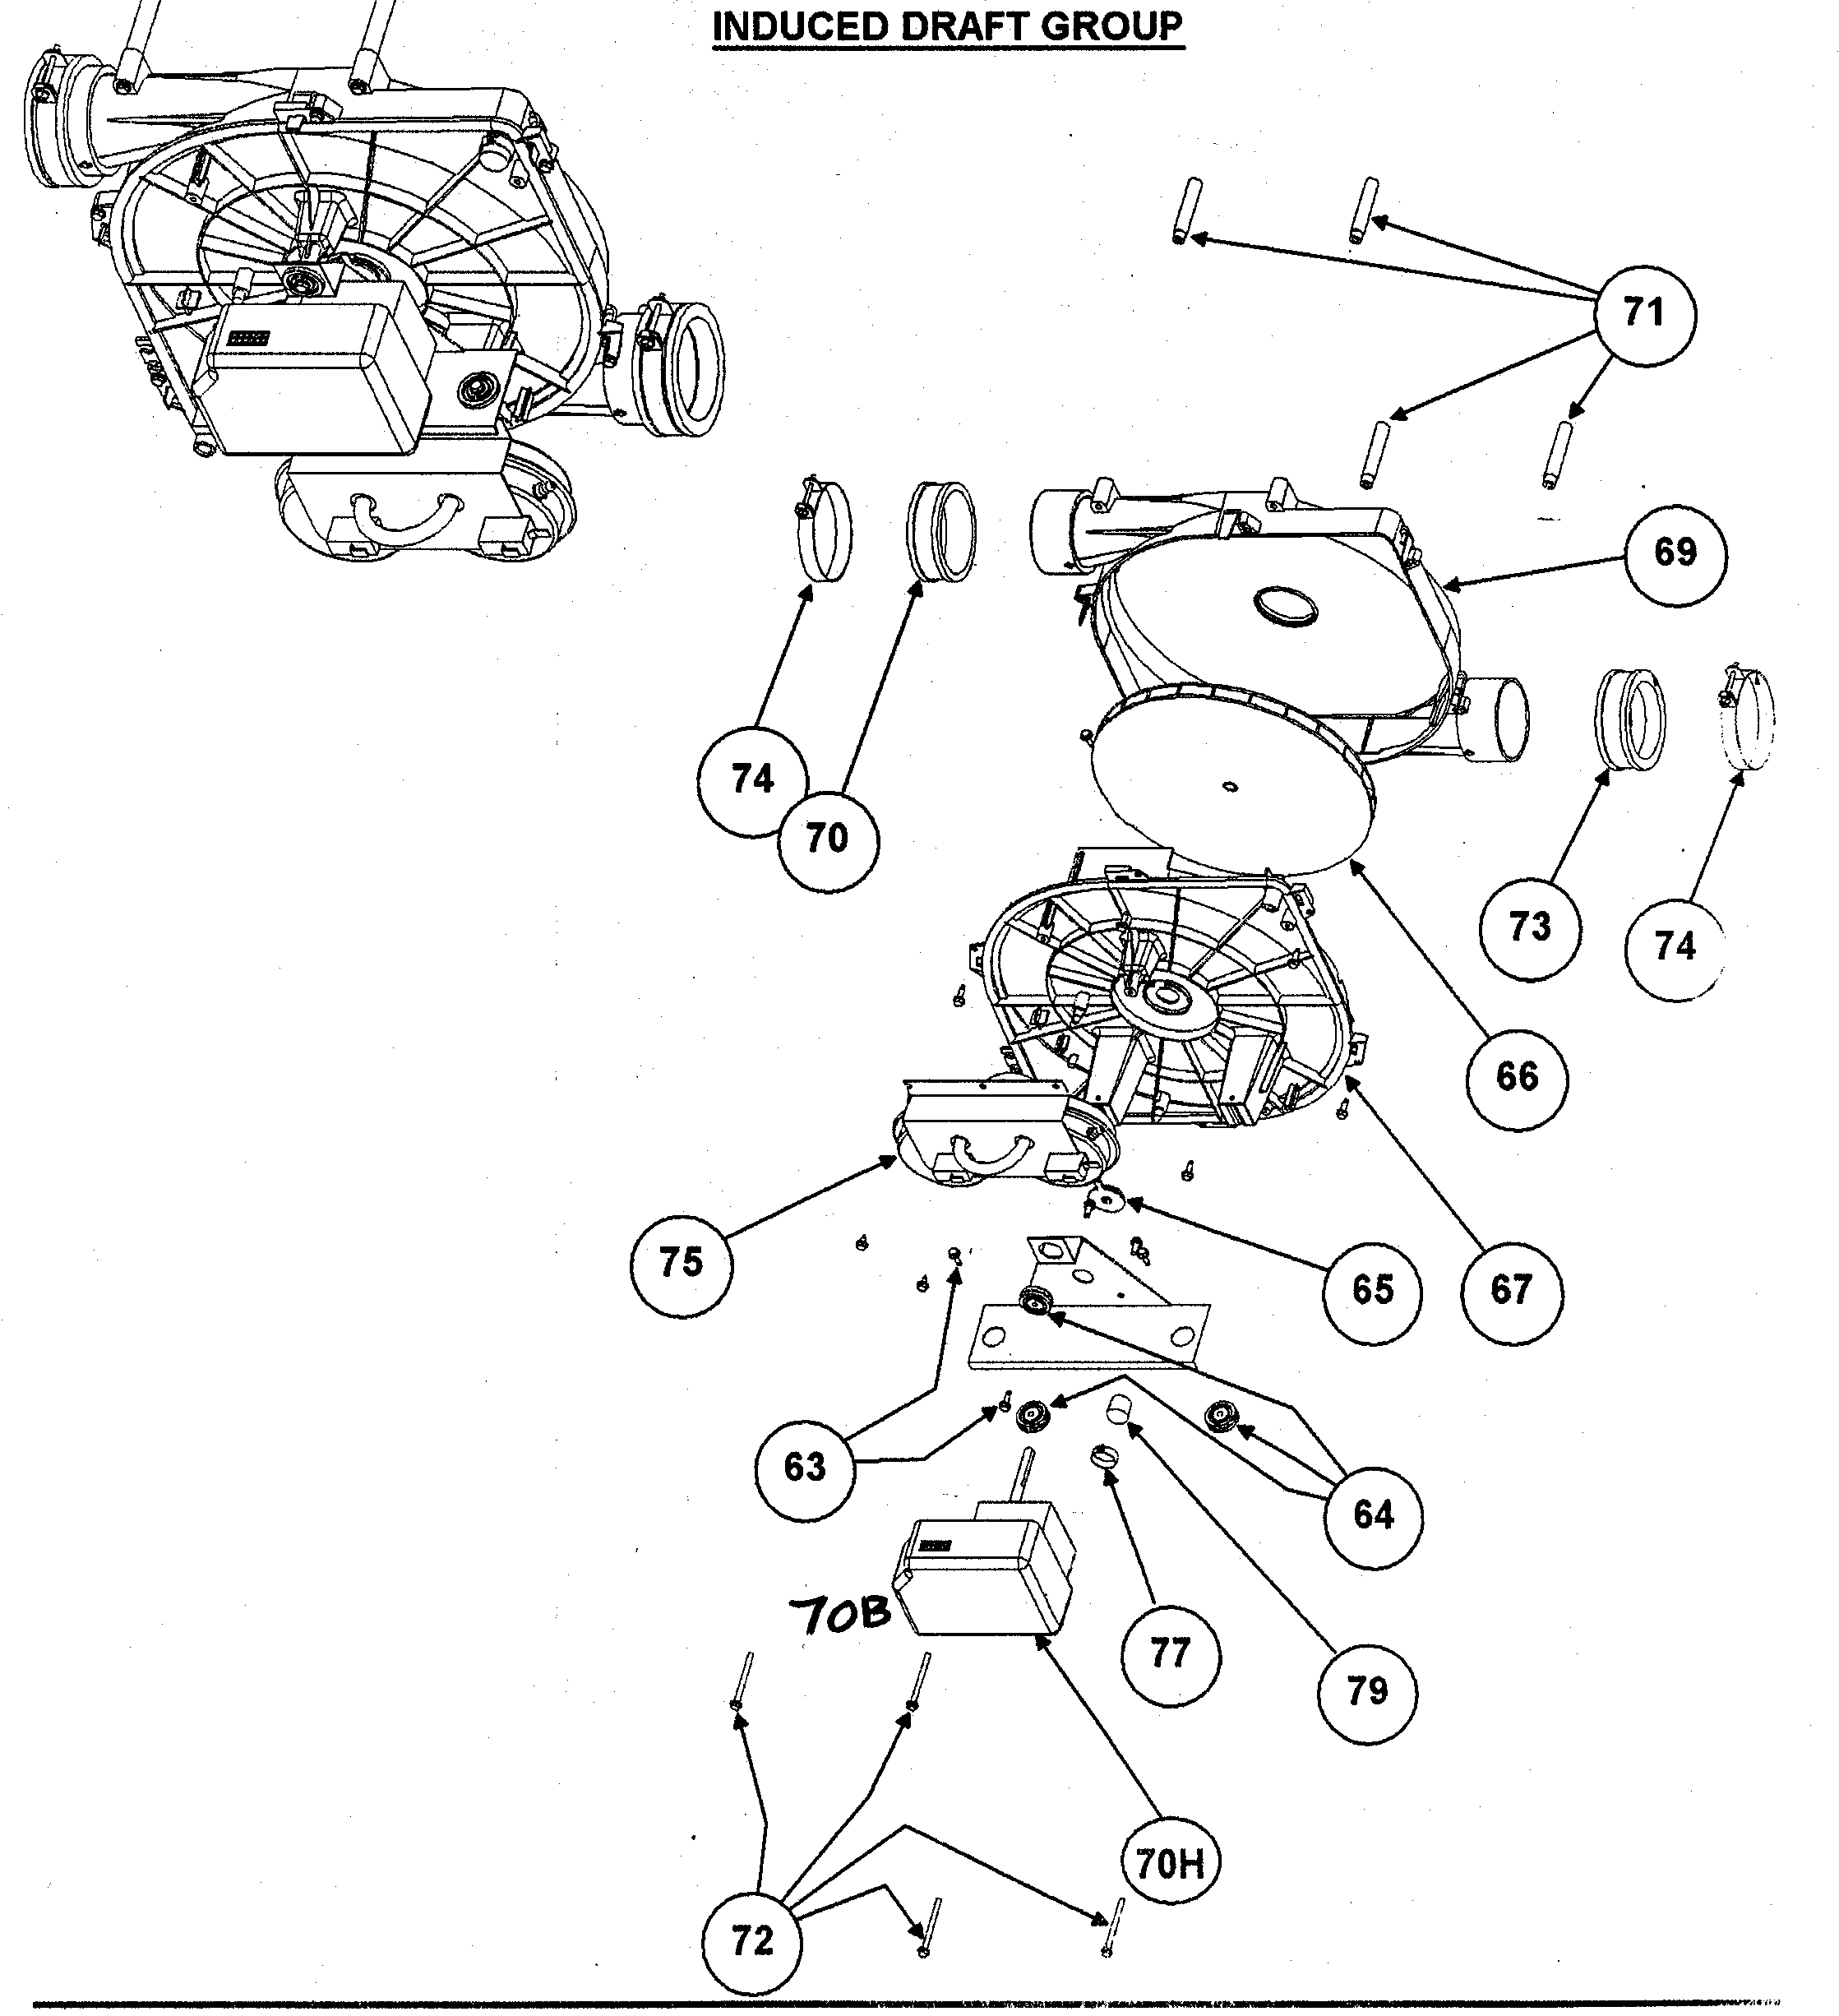 Carrier 58MTA120F10120 induced draft group diagram